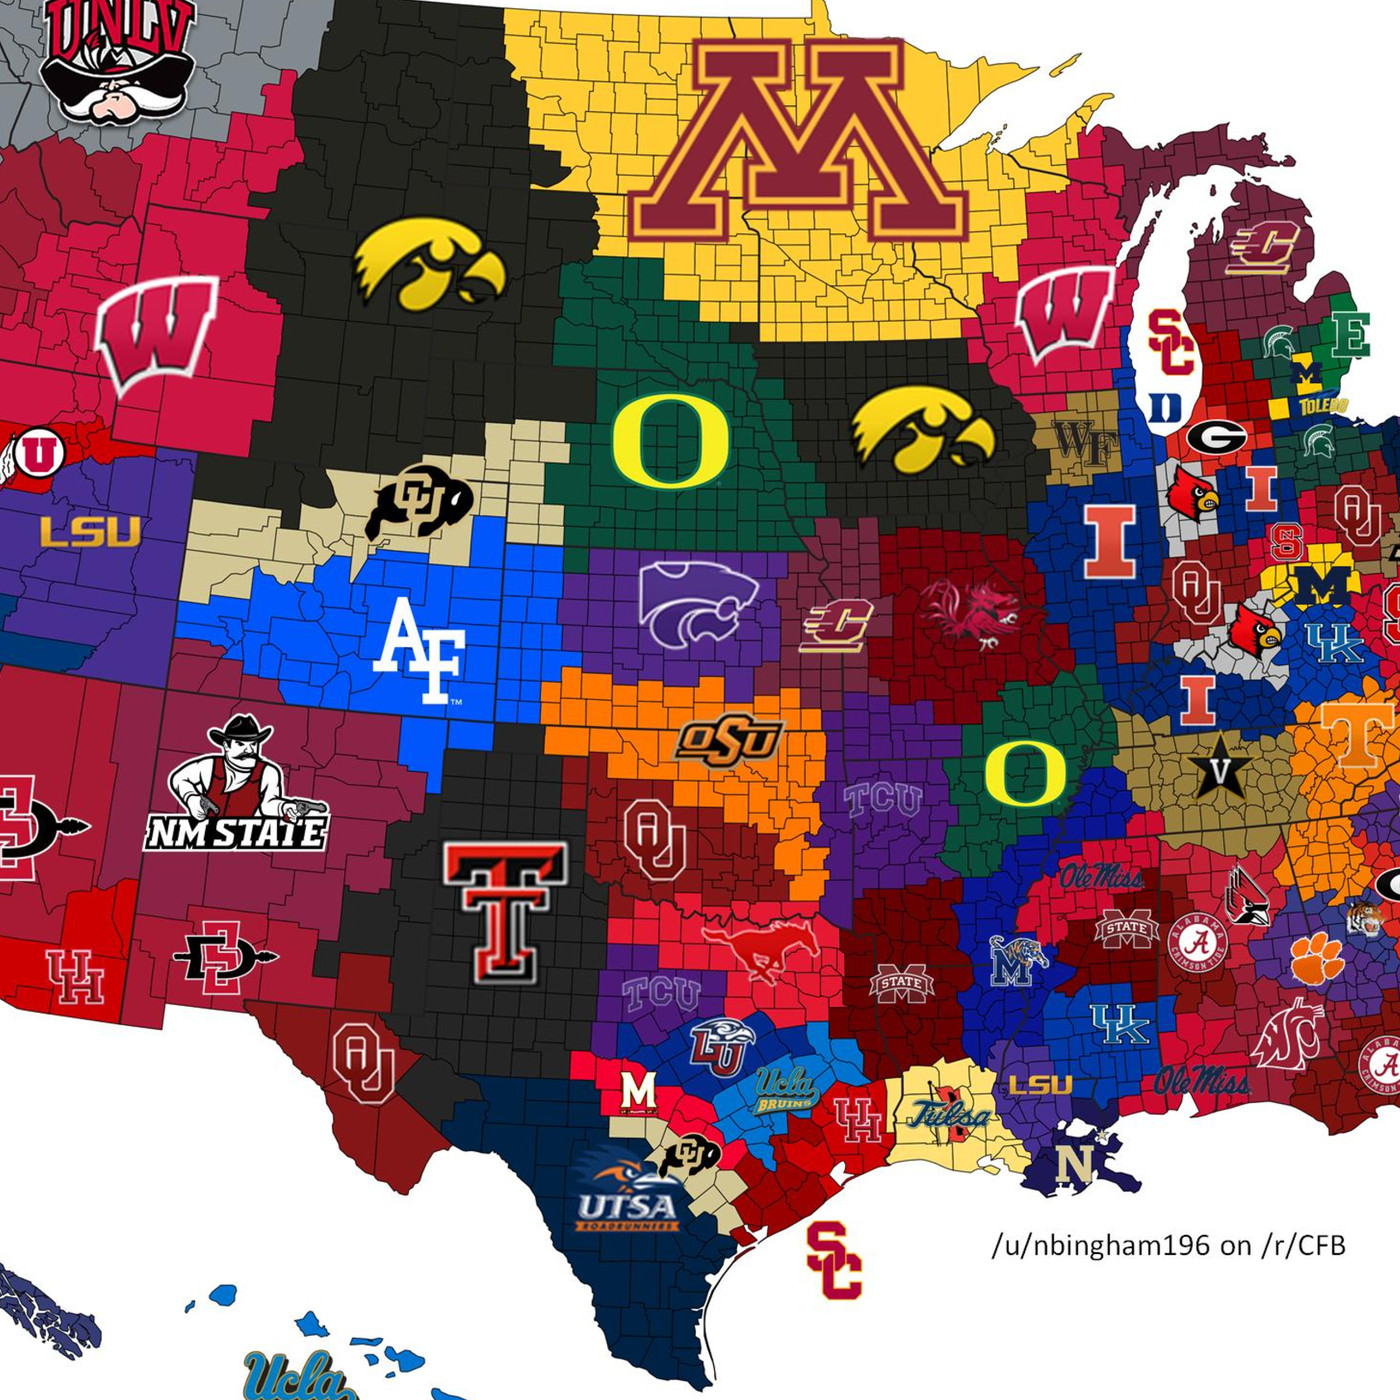 2017 college football map what if each winner took its opponents 2017 college football map what if each winner took its opponents land sbnation publicscrutiny Image collections